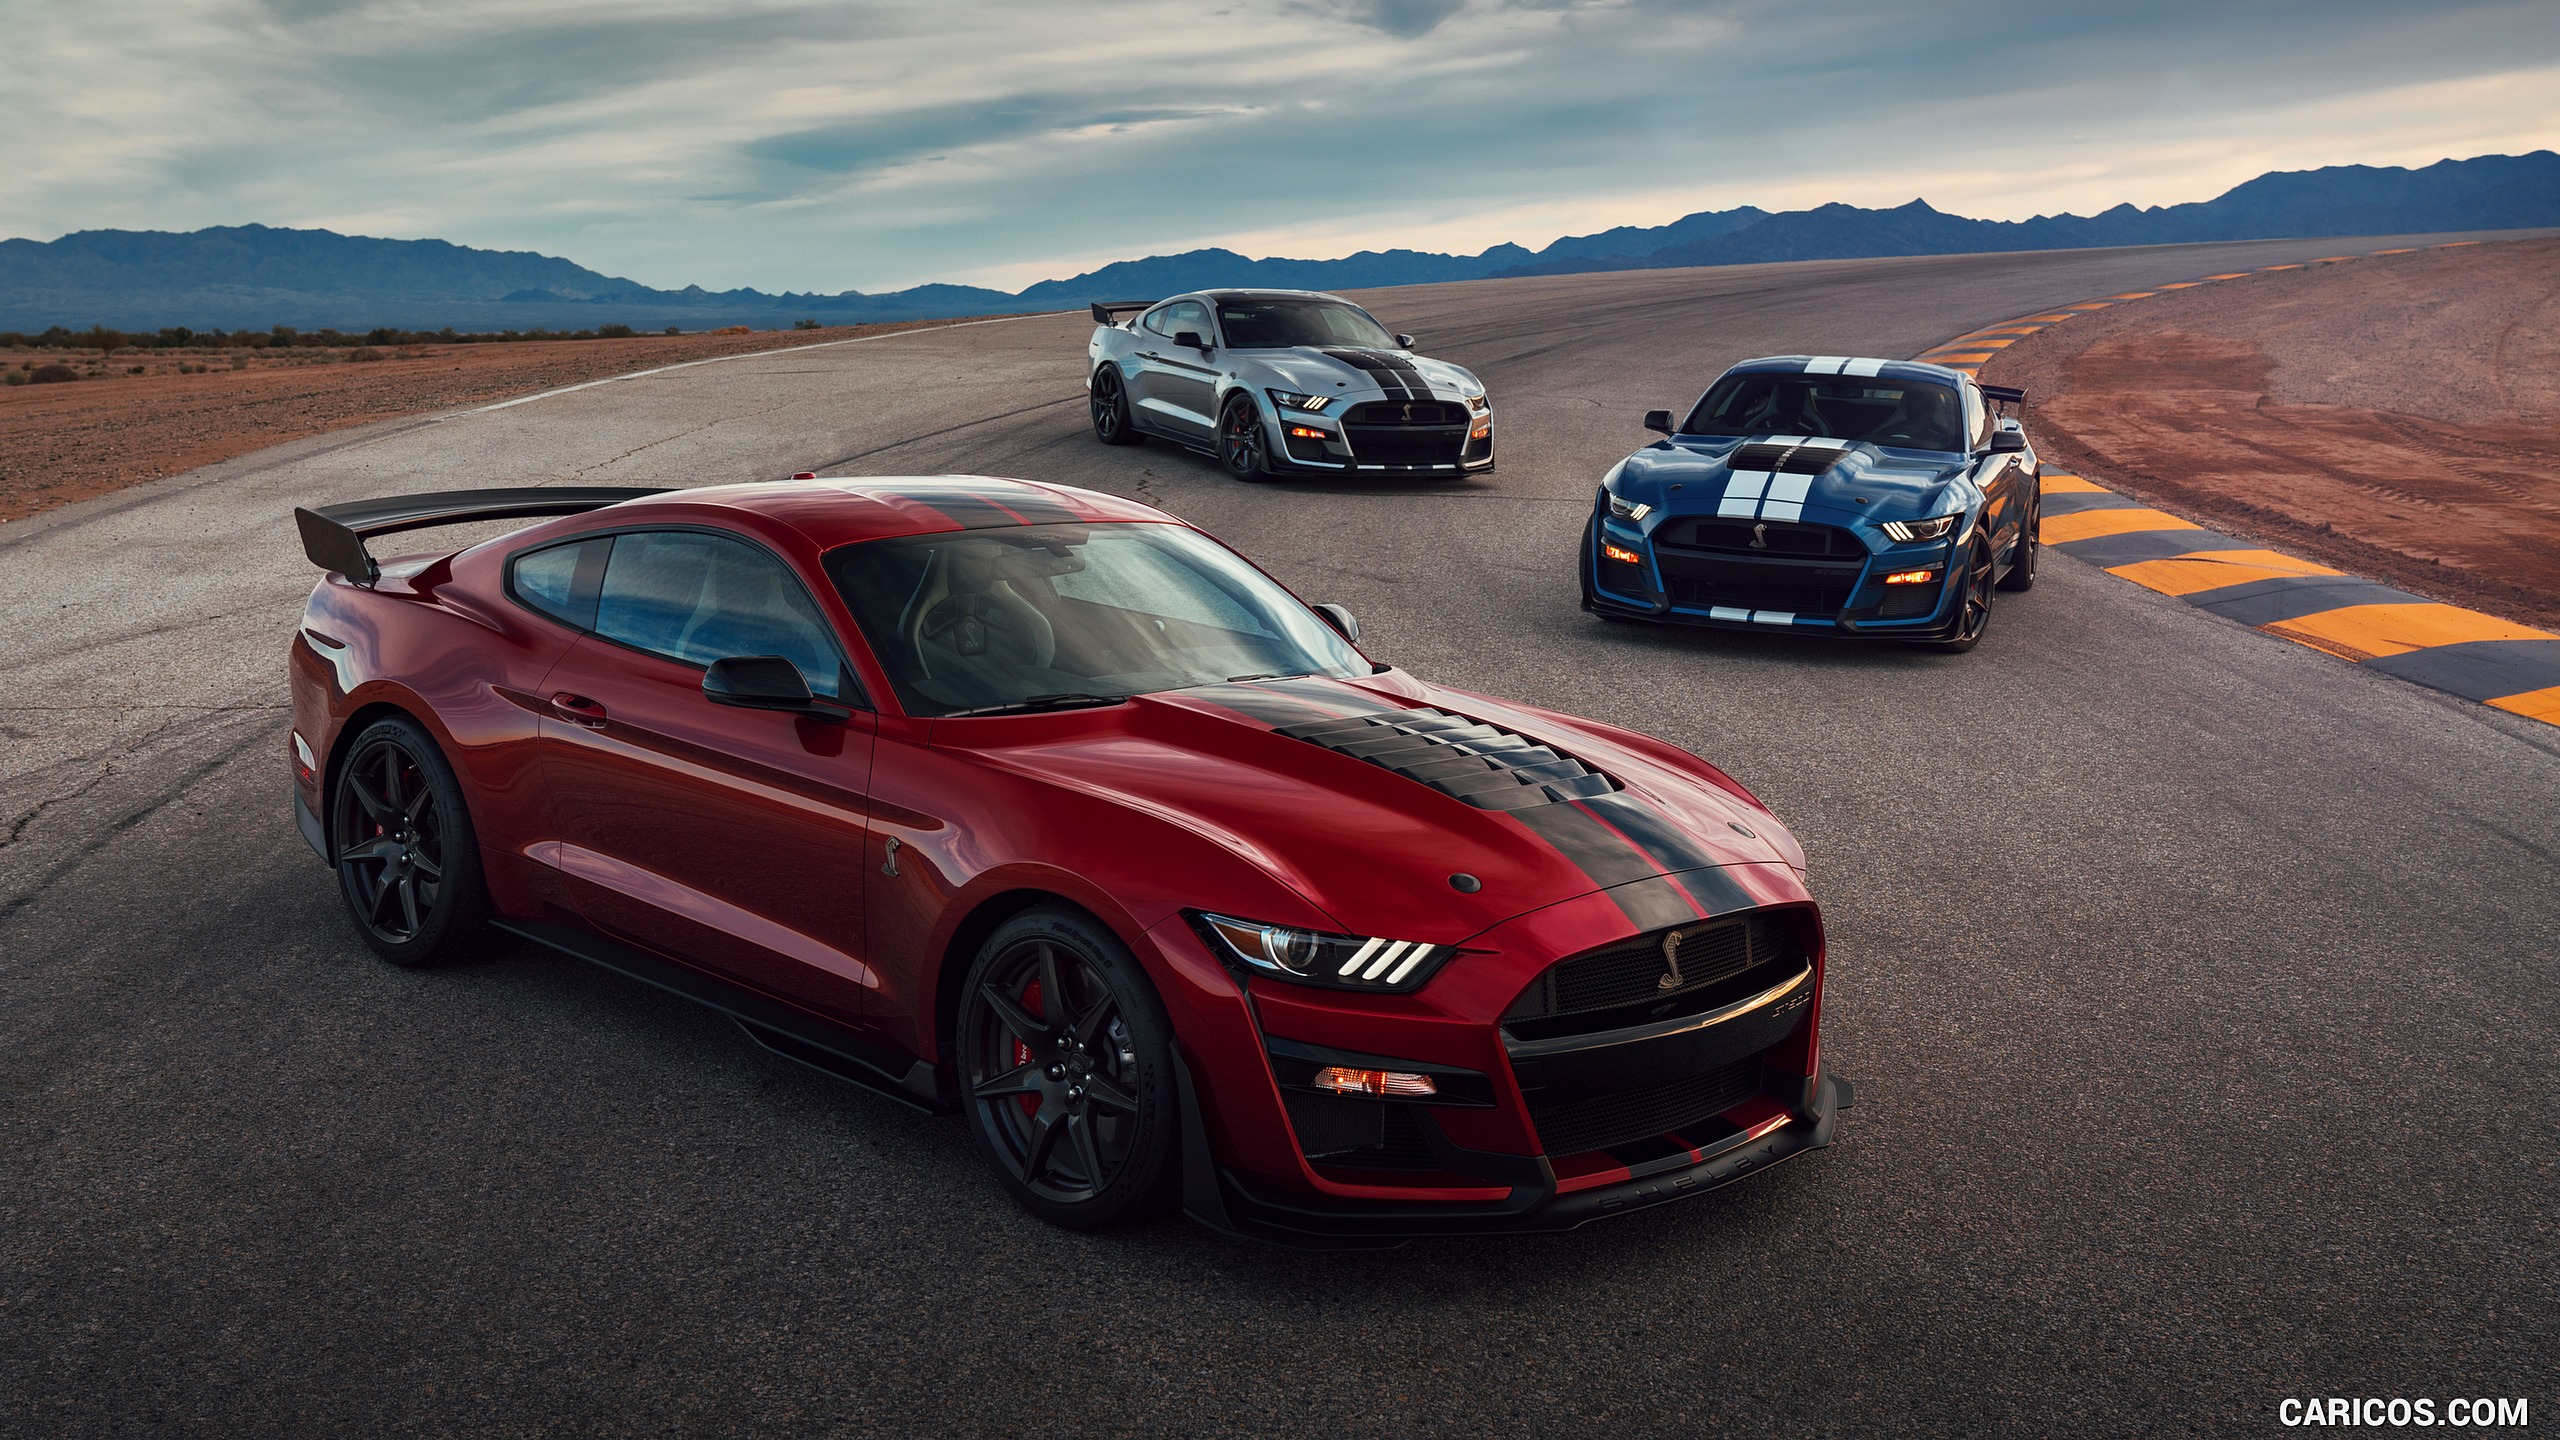 Ford Mustang 2020 Wallpapers 2560x1440